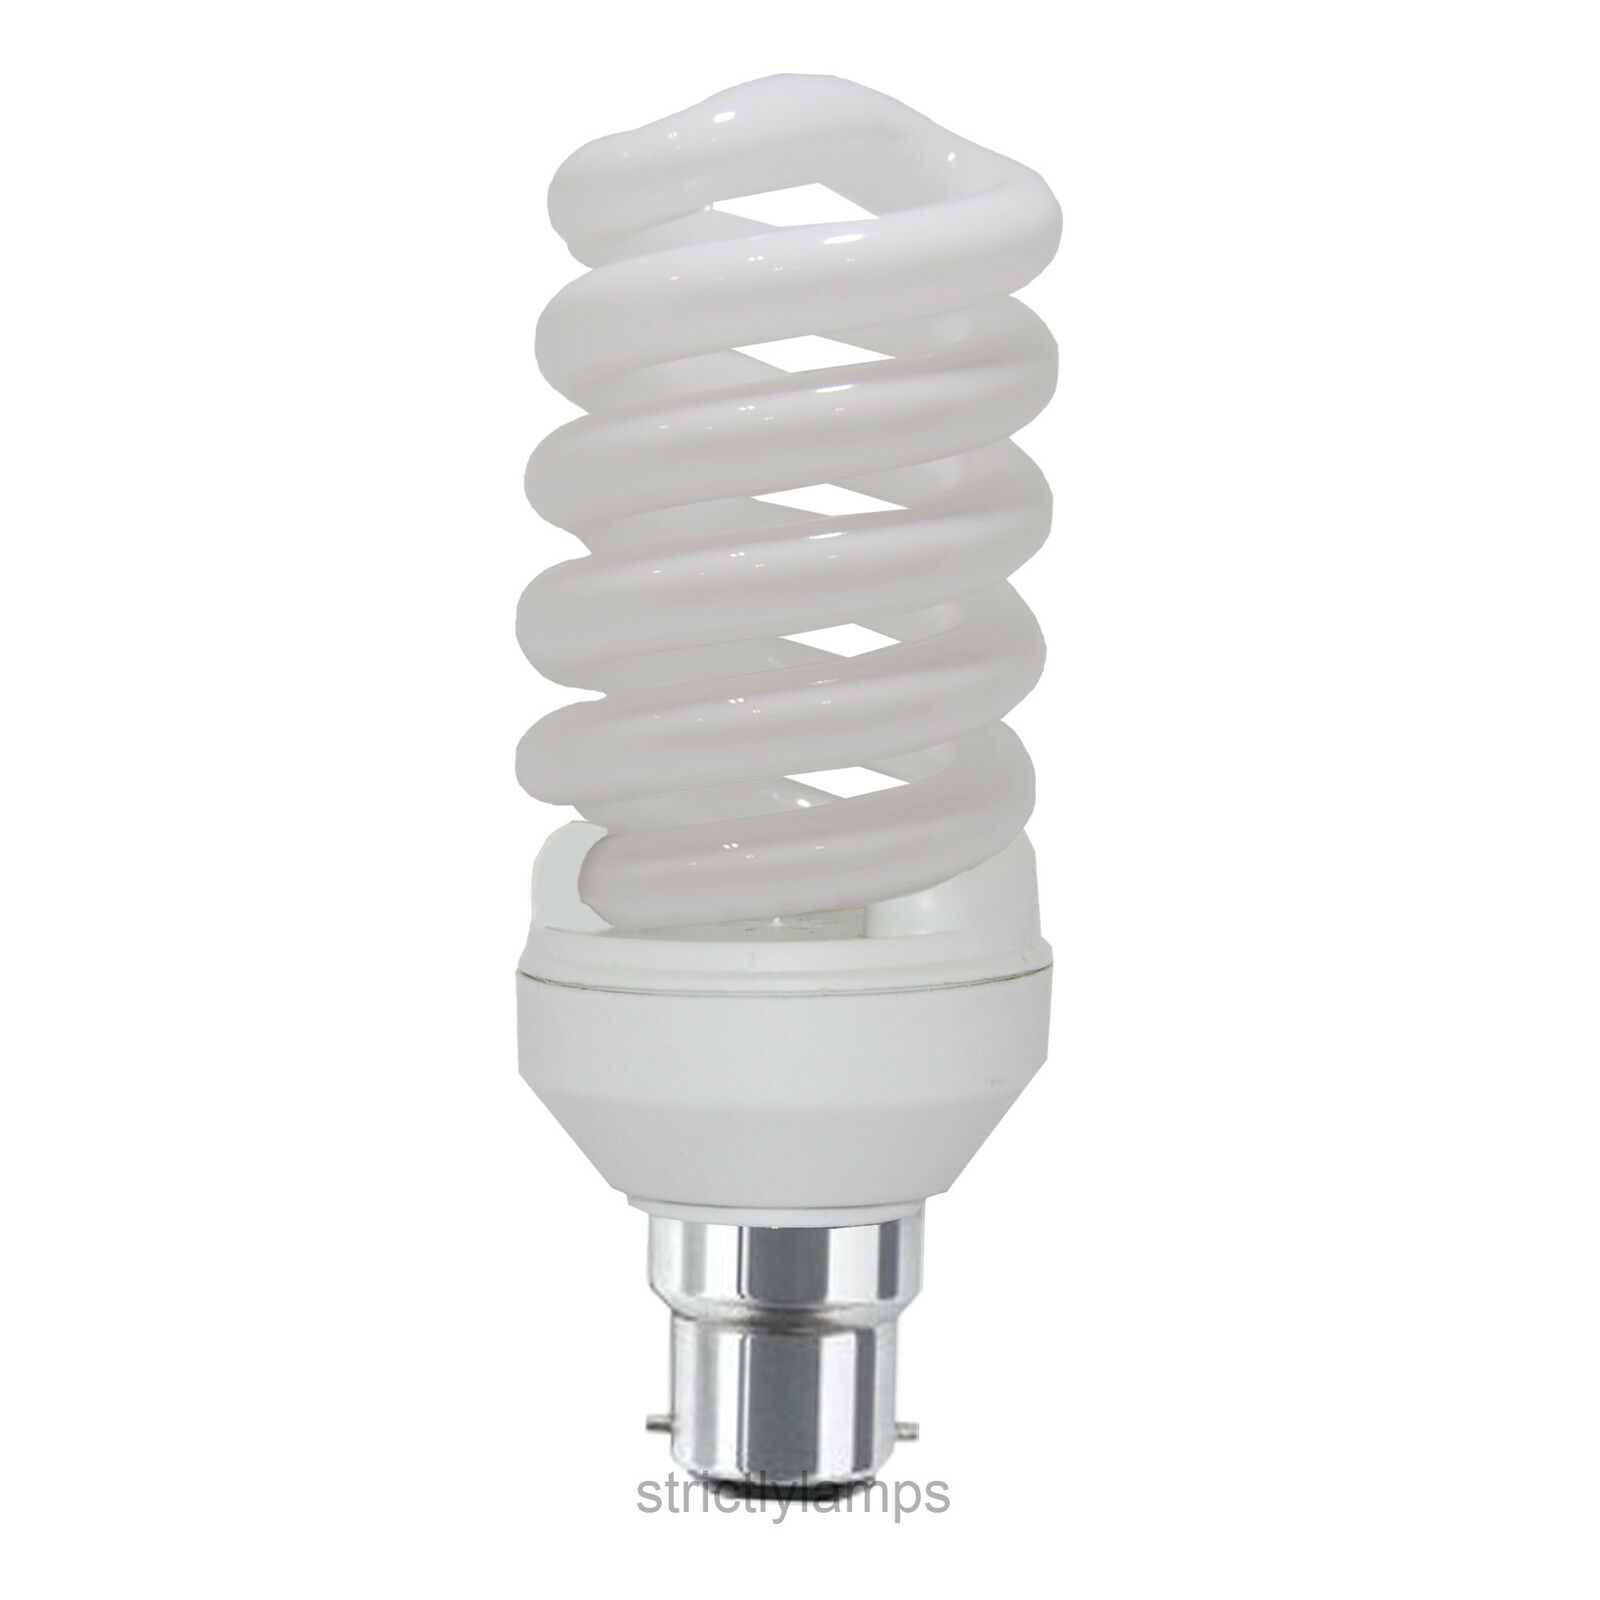 cool white 35w energy saving spiral light bulb bayonet cap. Black Bedroom Furniture Sets. Home Design Ideas